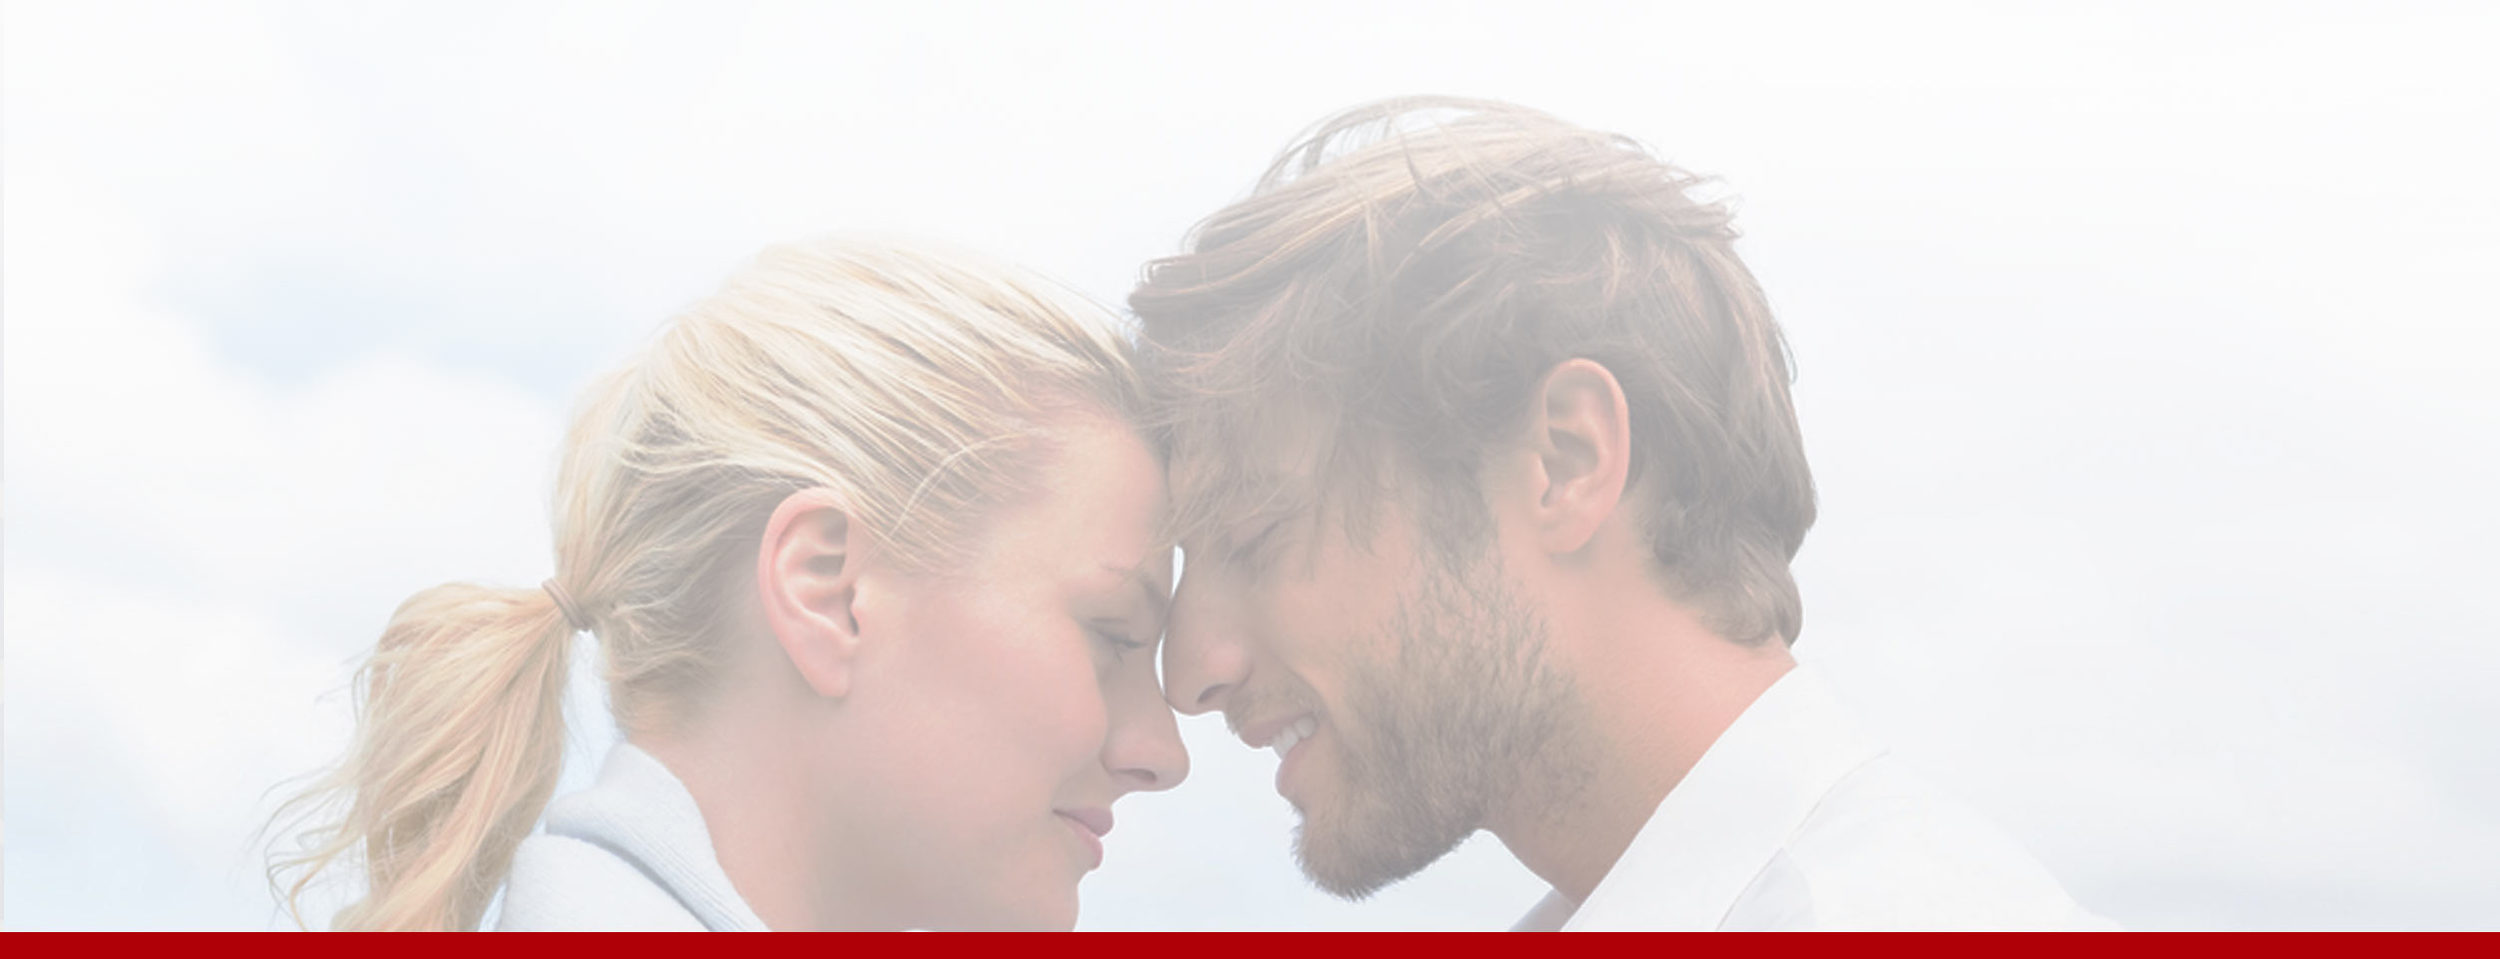 How can you begin improving your romantic relationship today?